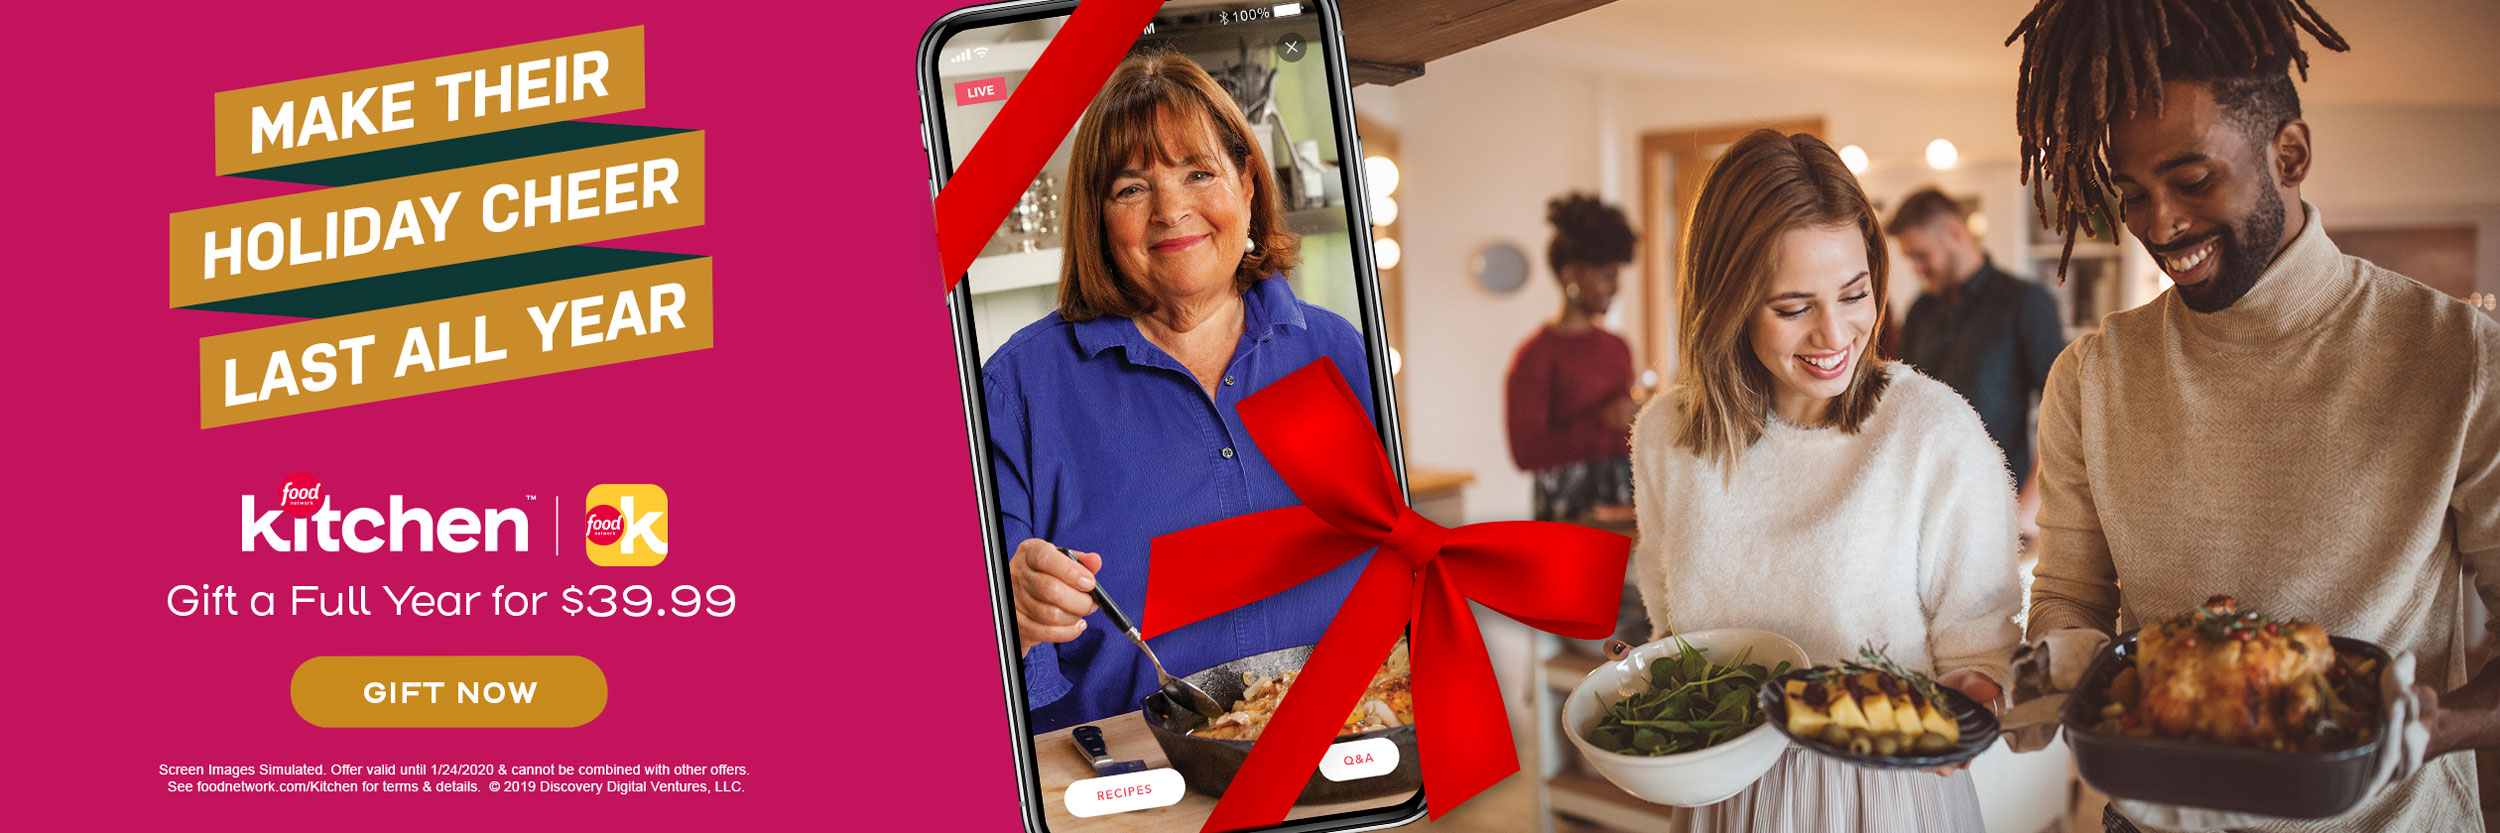 Make their holiday cheer last all year. Gift a full year of Food Network Kitchen for $39.99. Click here to Gift Now. Screen Images Simulated. Offer valid until 1/24/2020 & cannot be combined with other offers. See foodnetwork.com/Kitchen for terms & details.  © 2019 Discovery Digital Ventures, LLC.